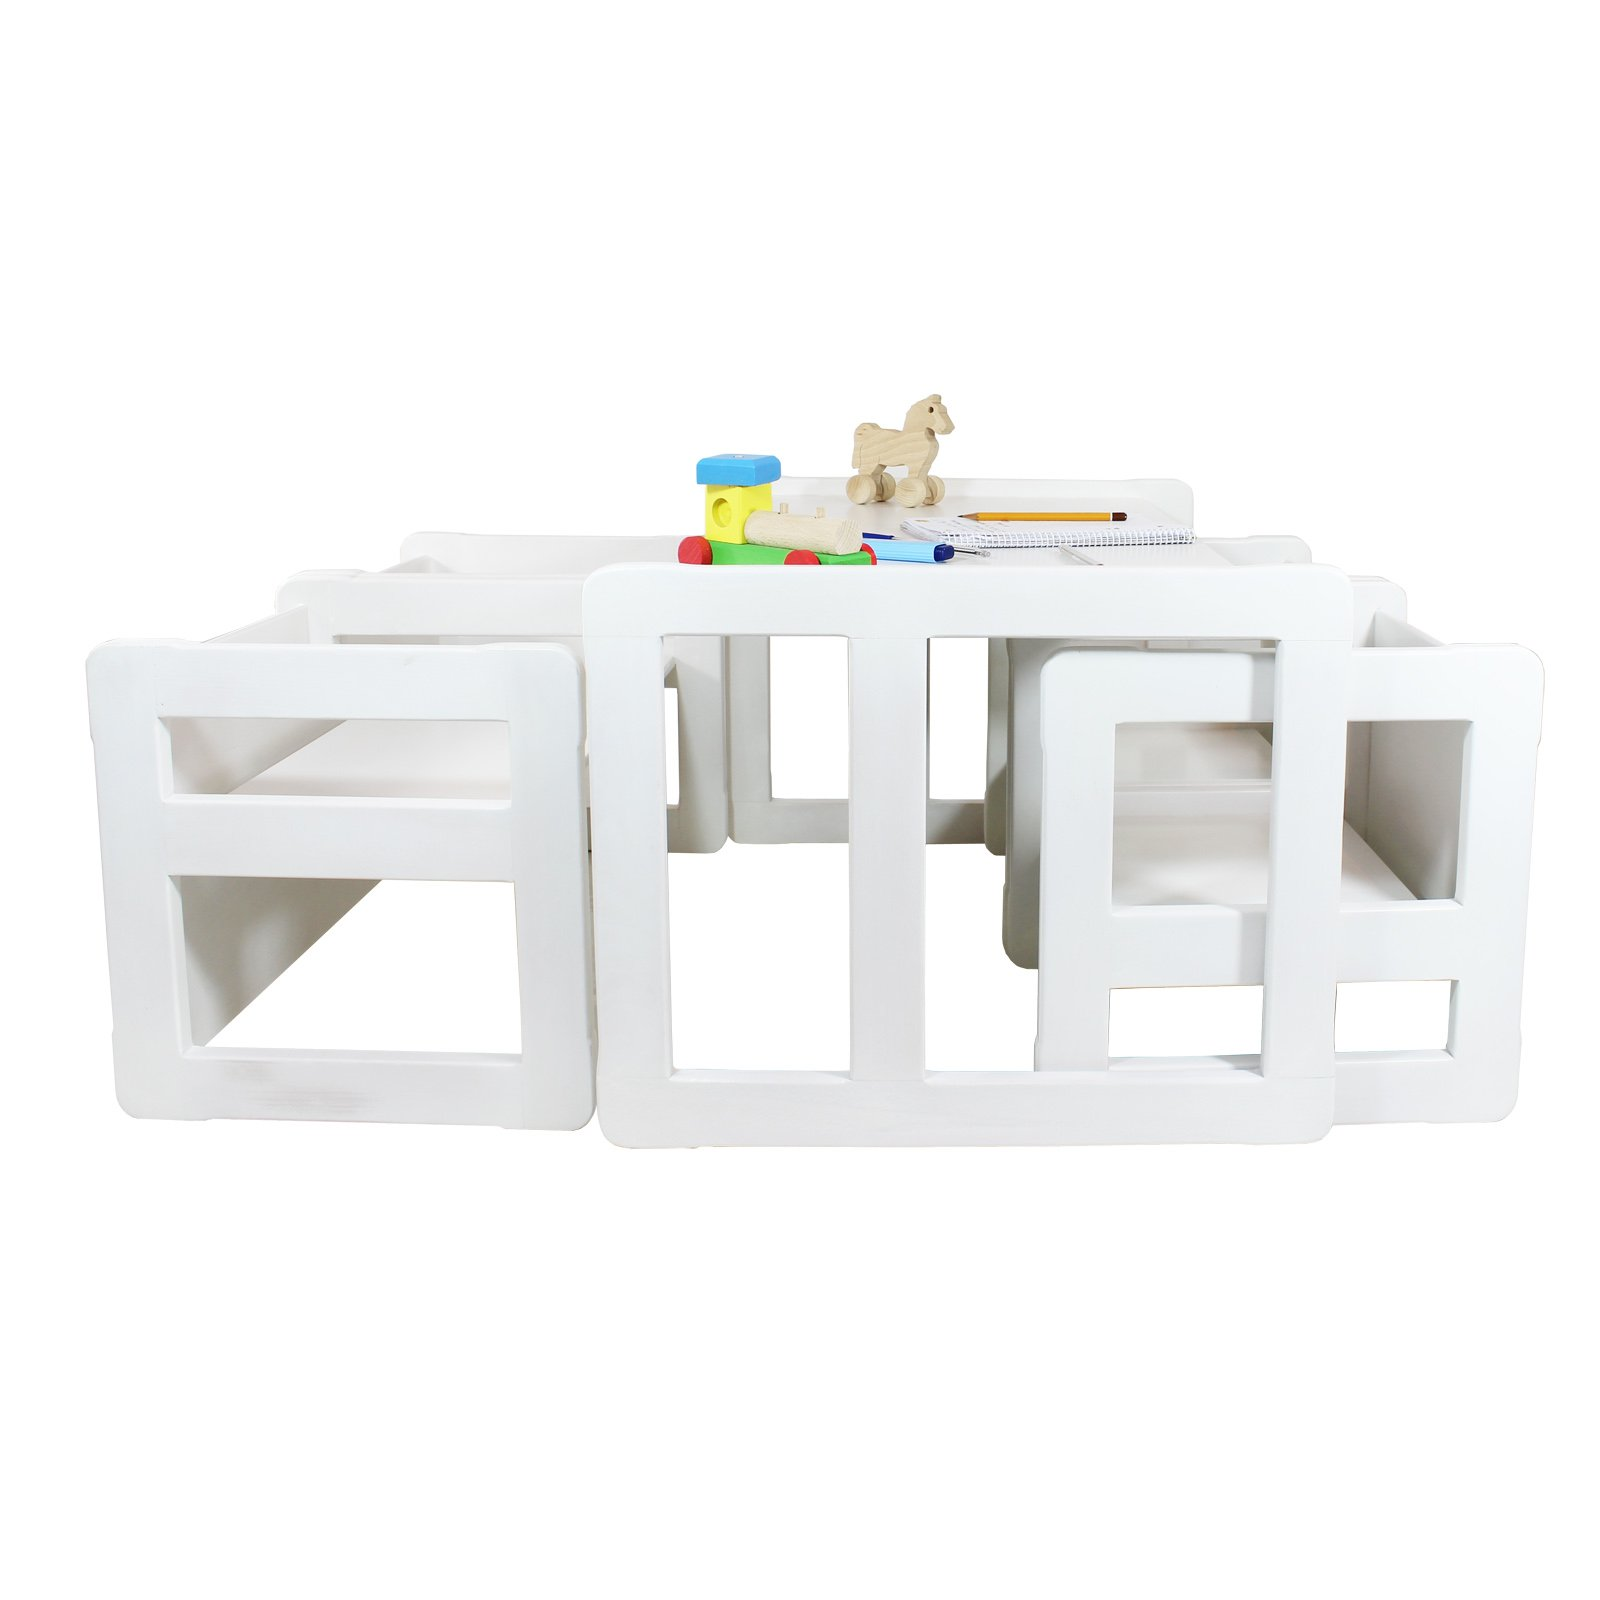 3 in 1 Childrens Multifunctional Furniture Set of 5, Four Small Chairs or Tables and One Large Bench or Table Beech Wood, White Stained